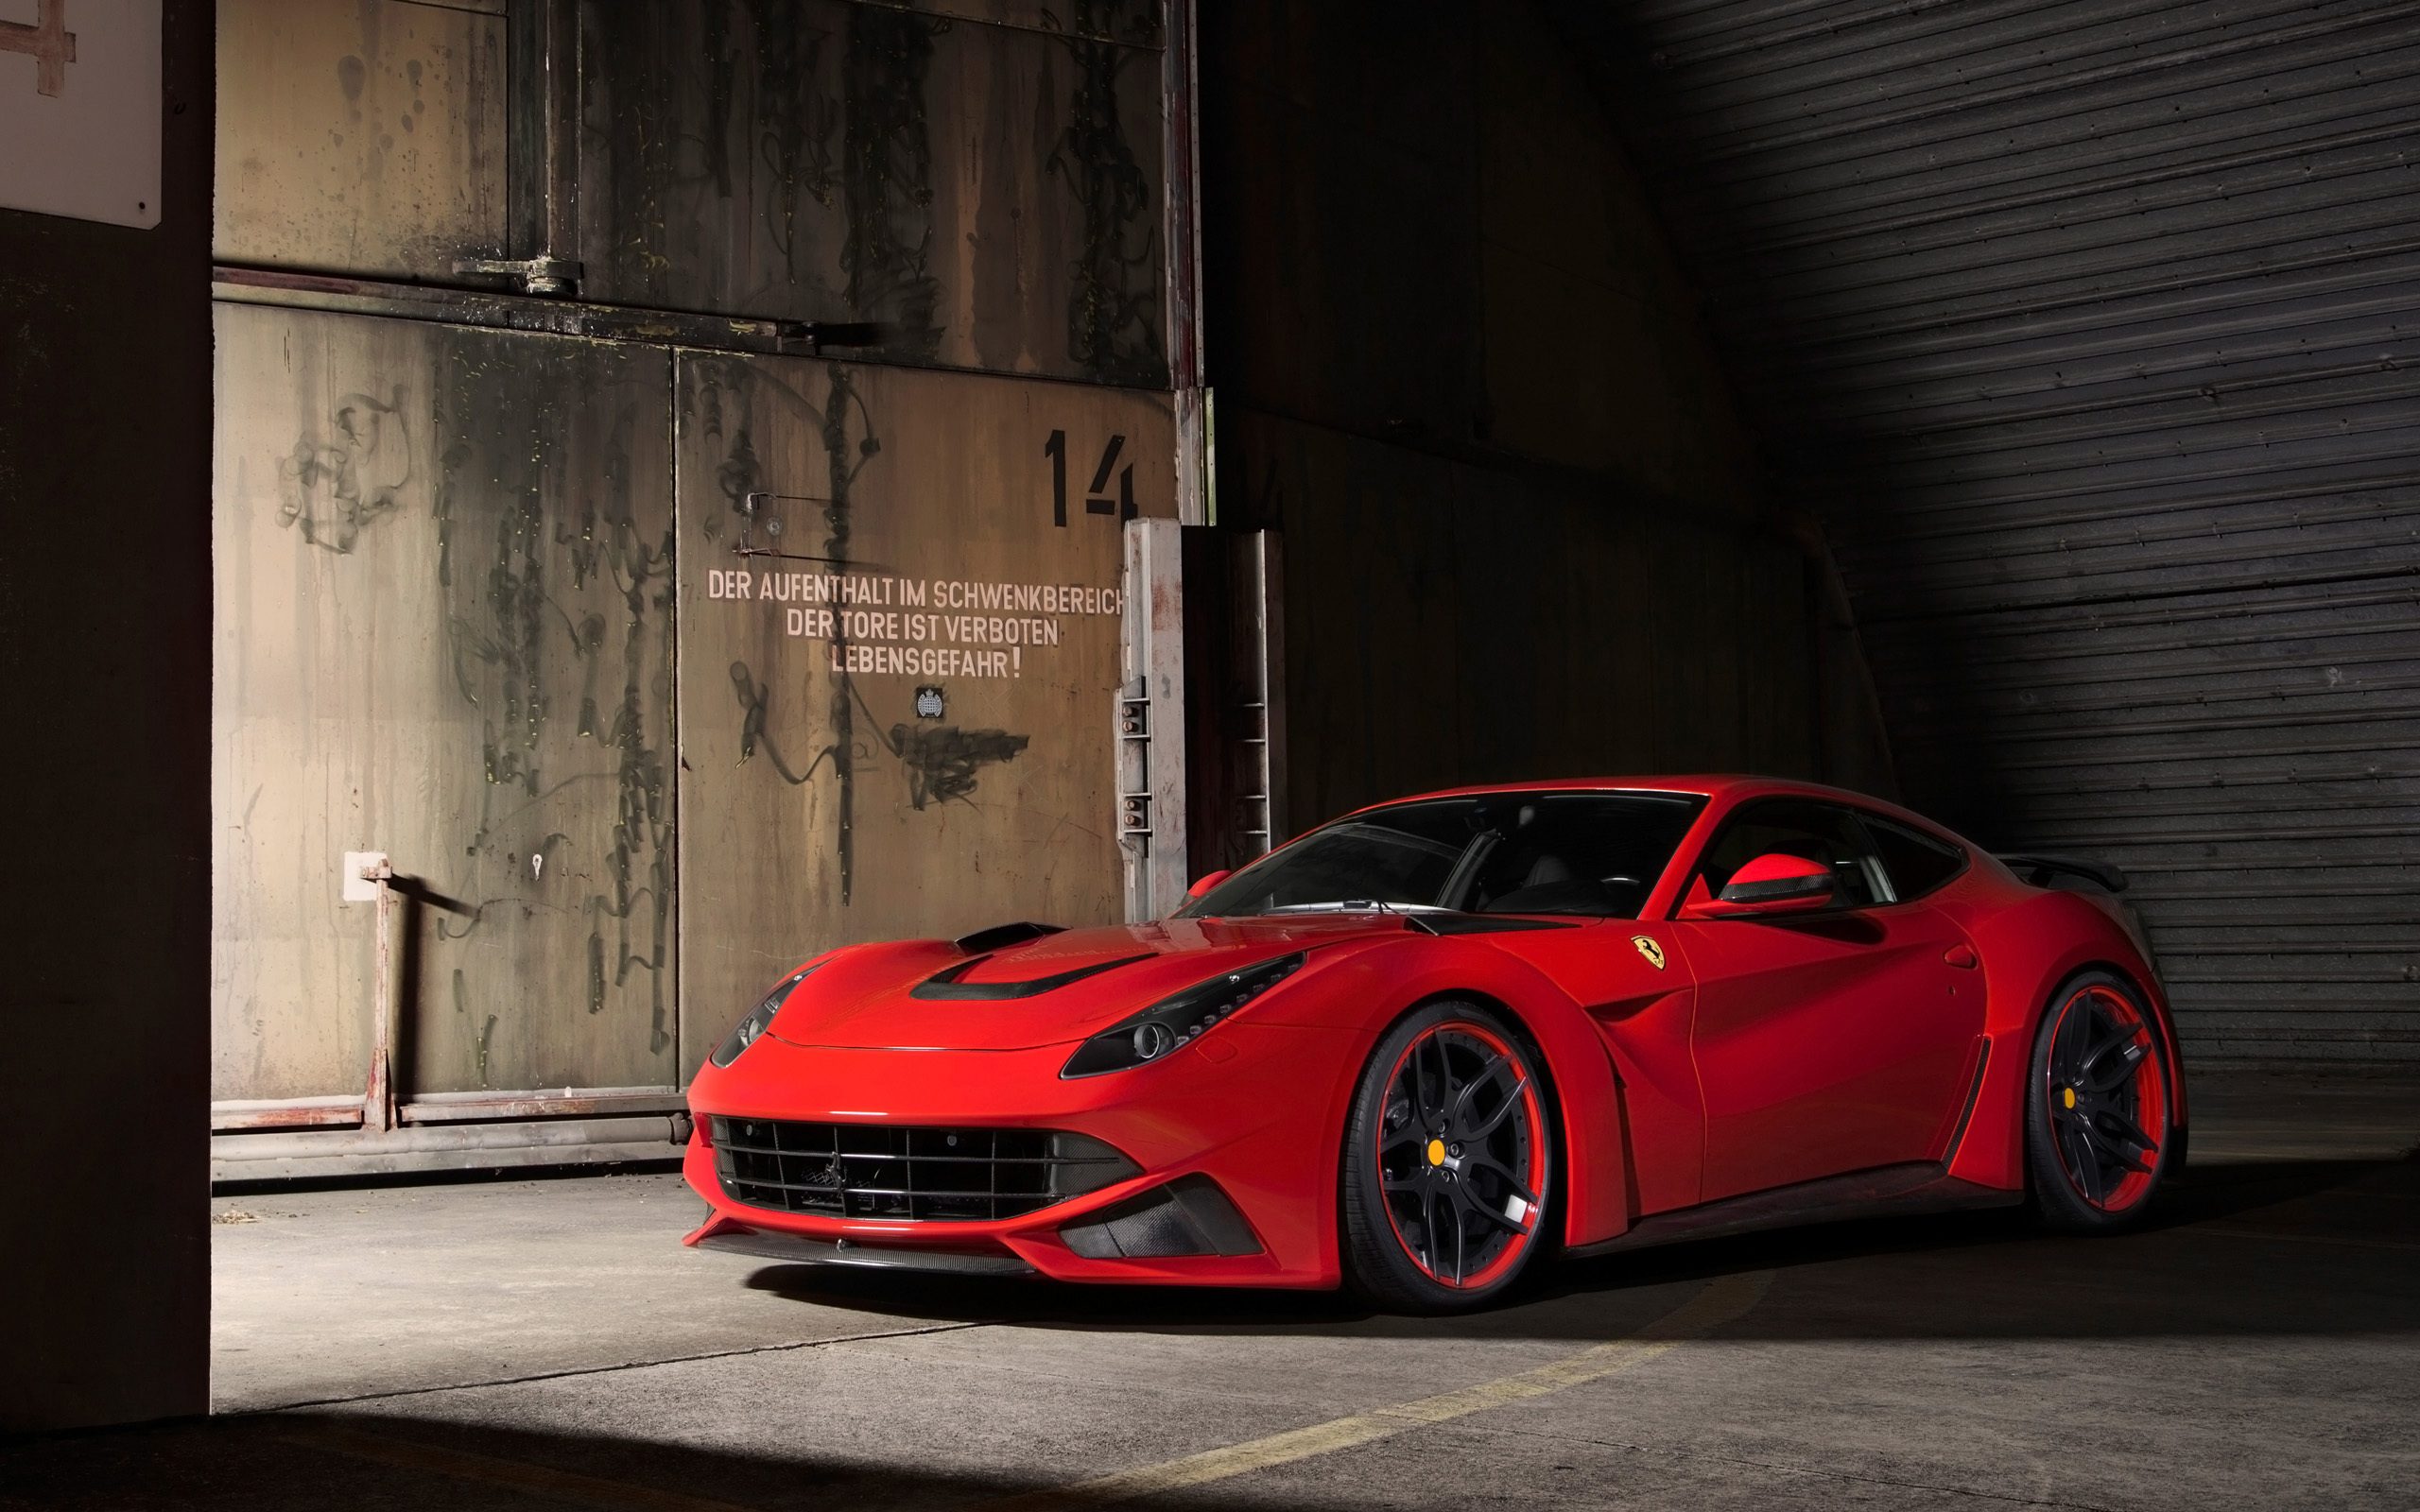 48189 download wallpaper Transport, Auto, Ferrari screensavers and pictures for free